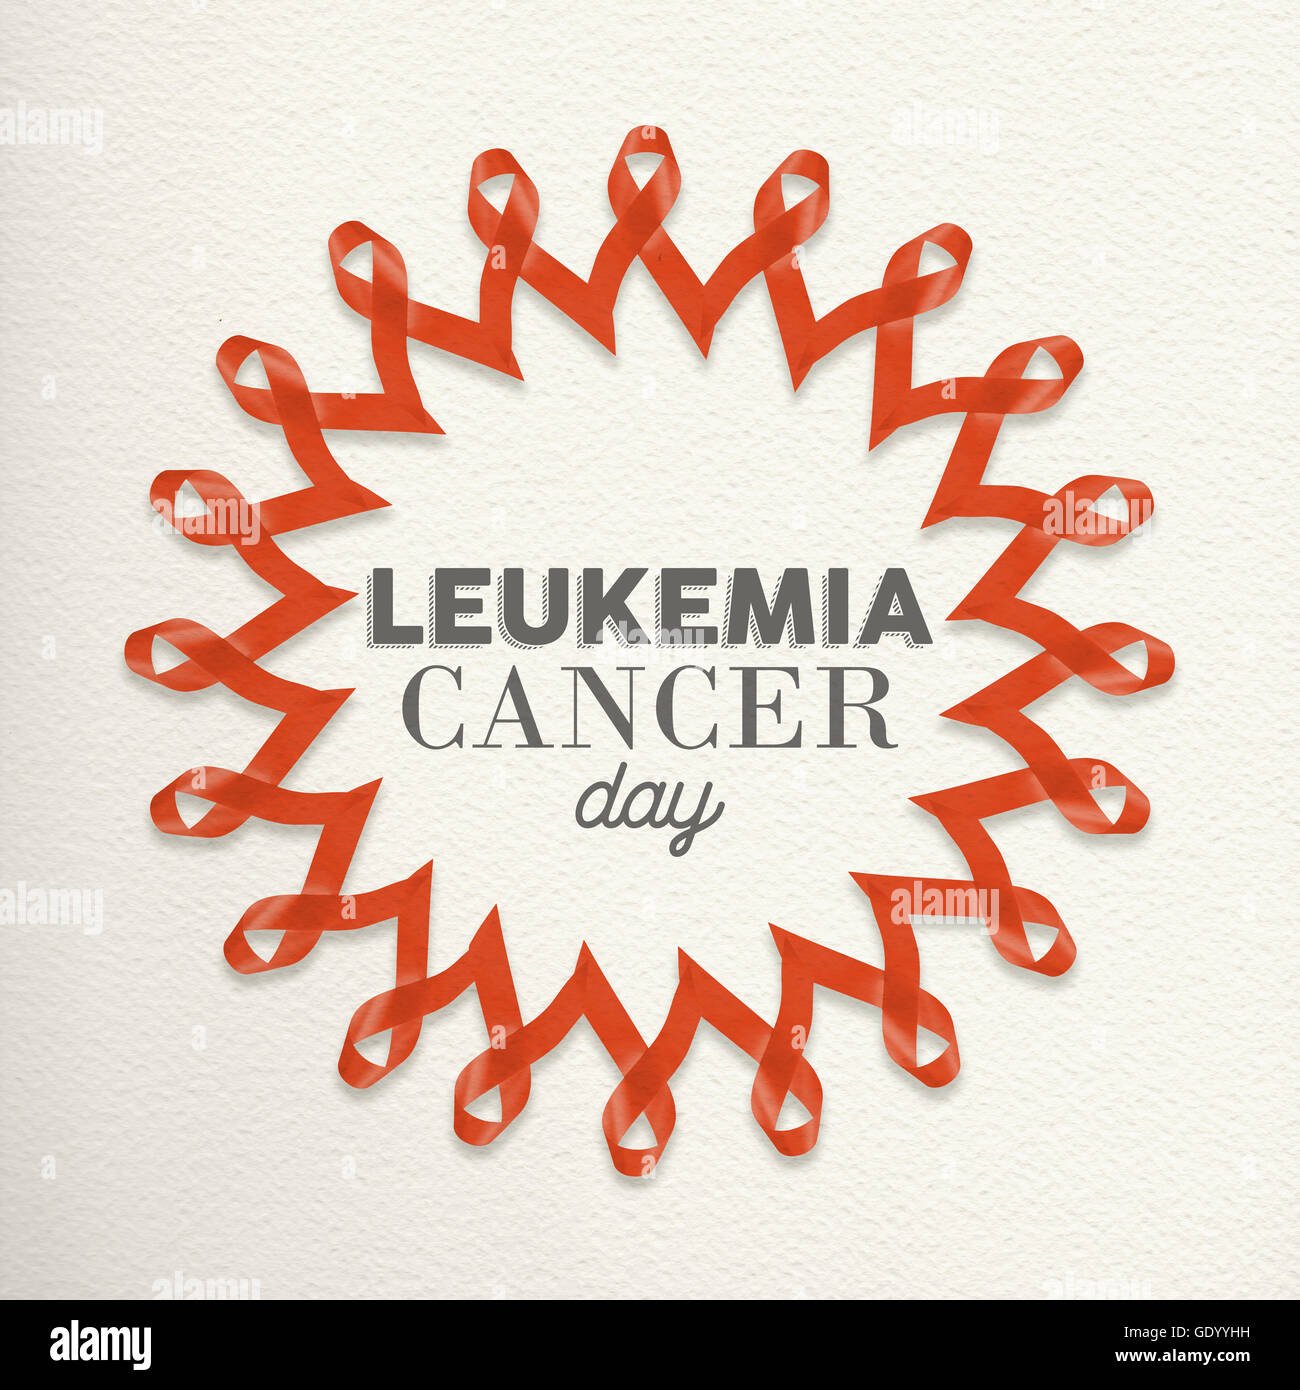 Leukemia cancer day mandala made of orange ribbons with typography for awareness support. - Stock Image